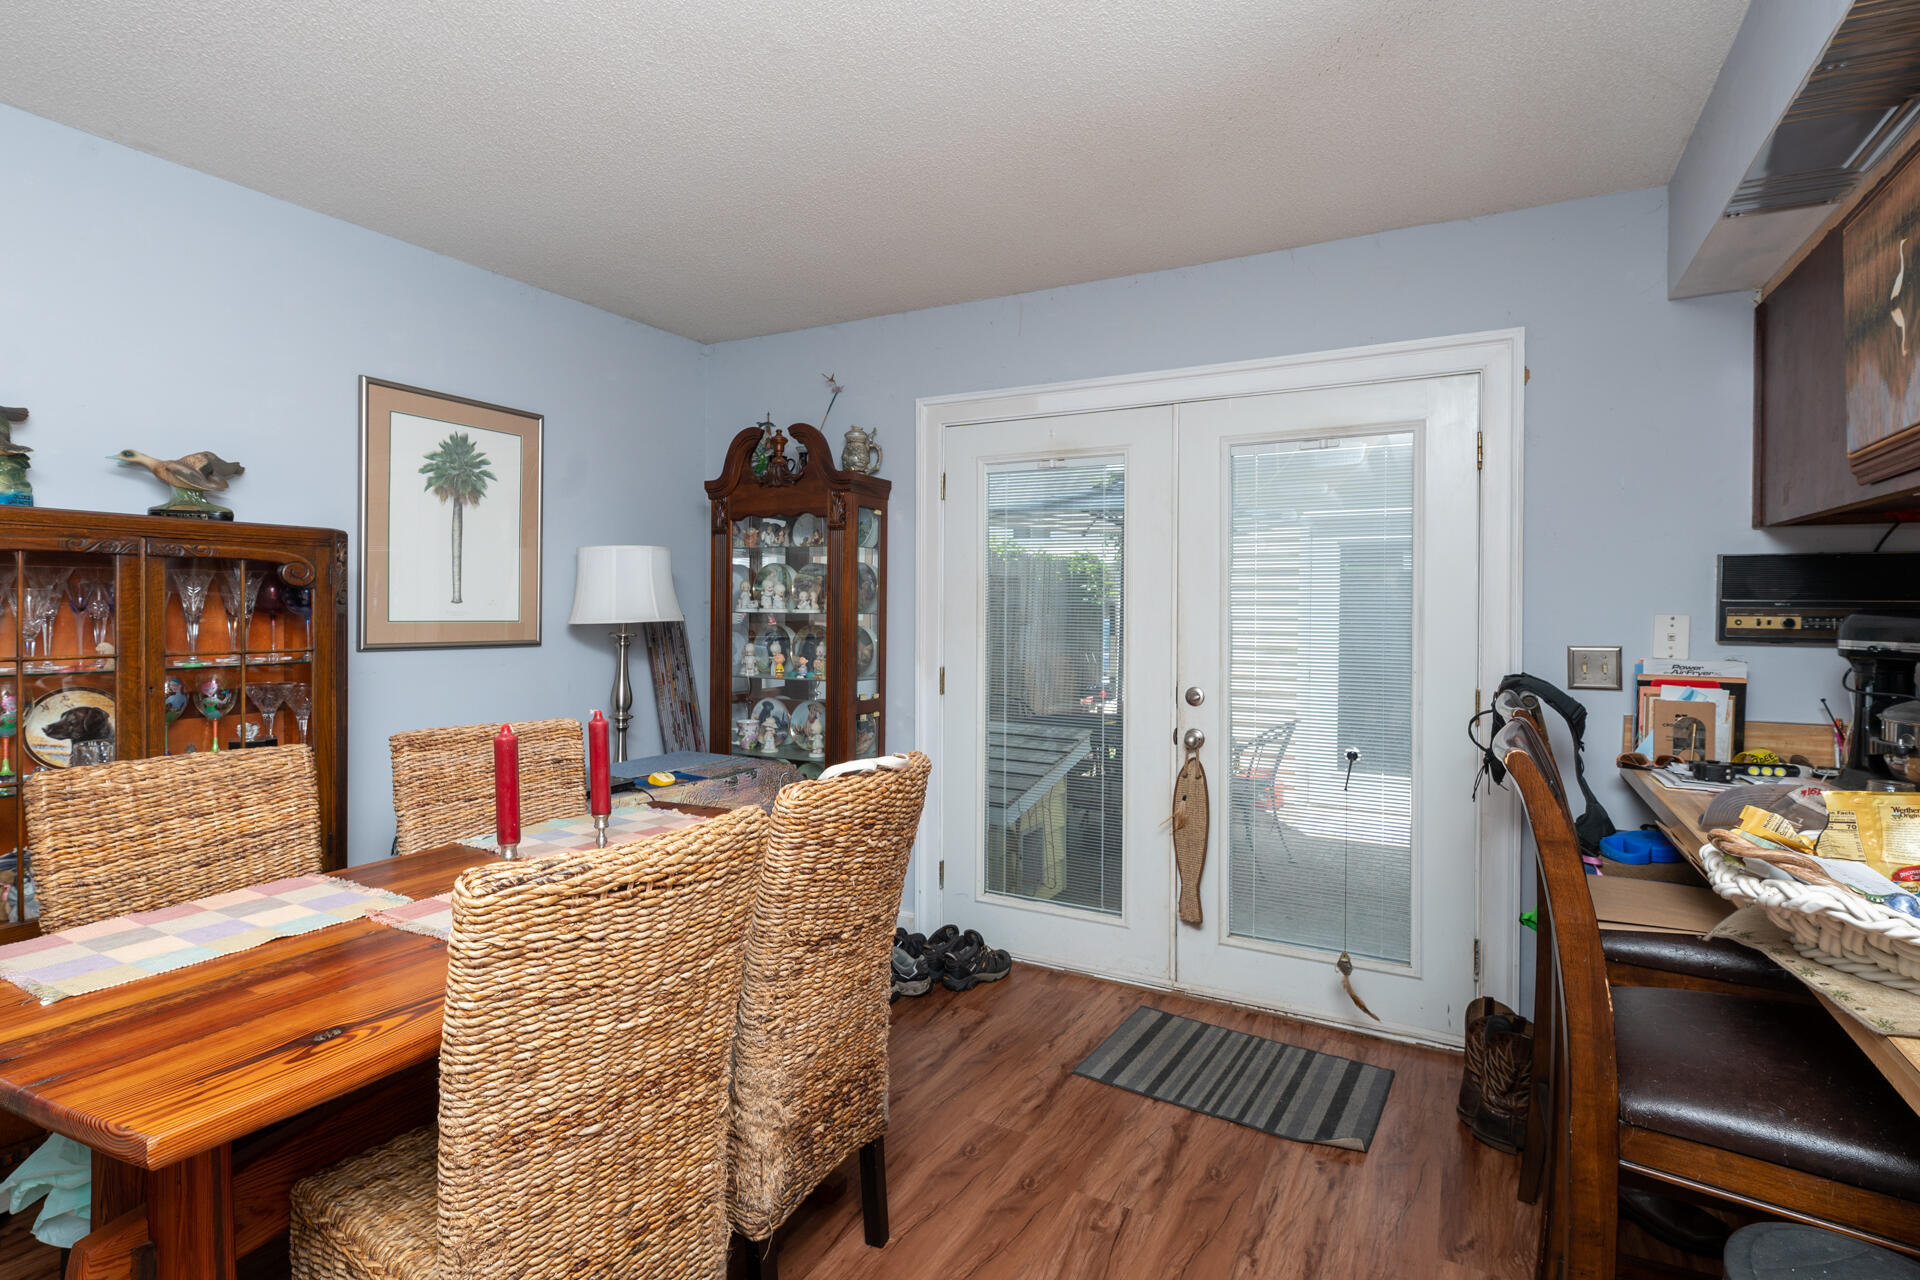 Old Towne Villas Homes For Sale - 2931 Cathedral, Charleston, SC - 4